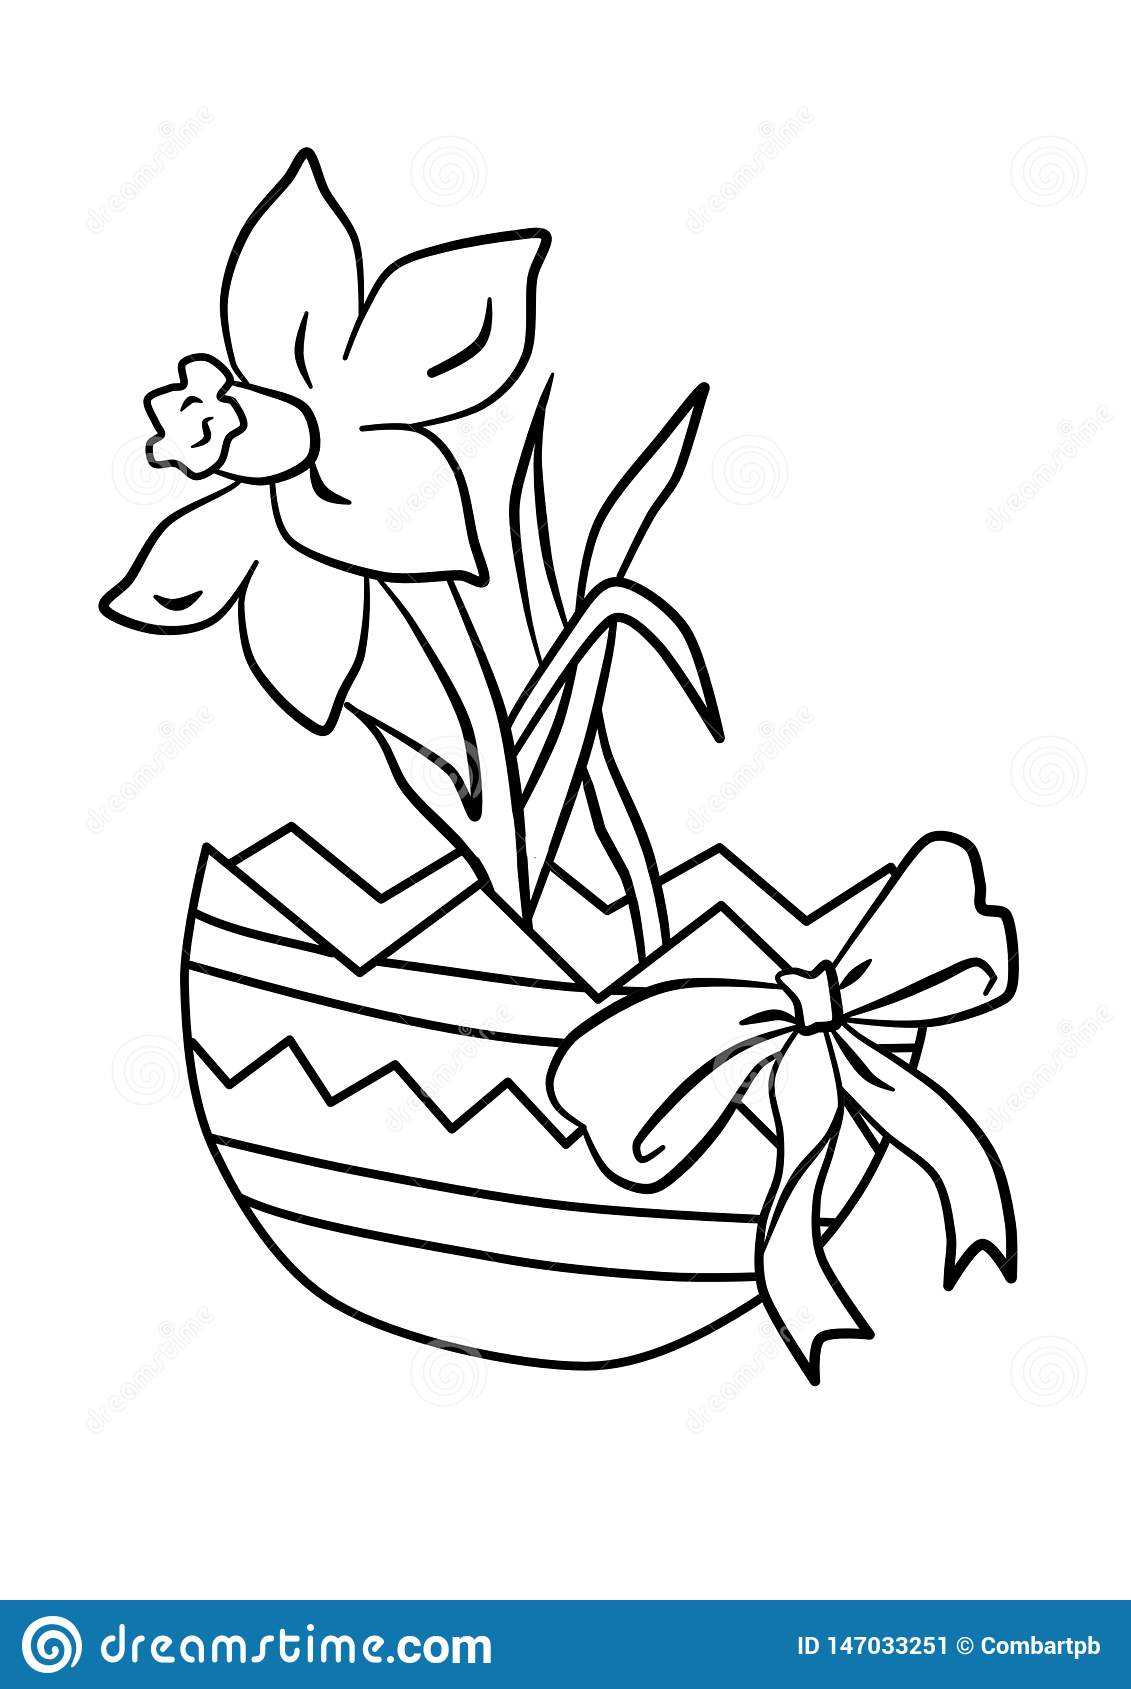 Colouring For Children Easter Coloring Page With Cartoon Easter Stock Vector Illustration Of Coloring Design 147033251